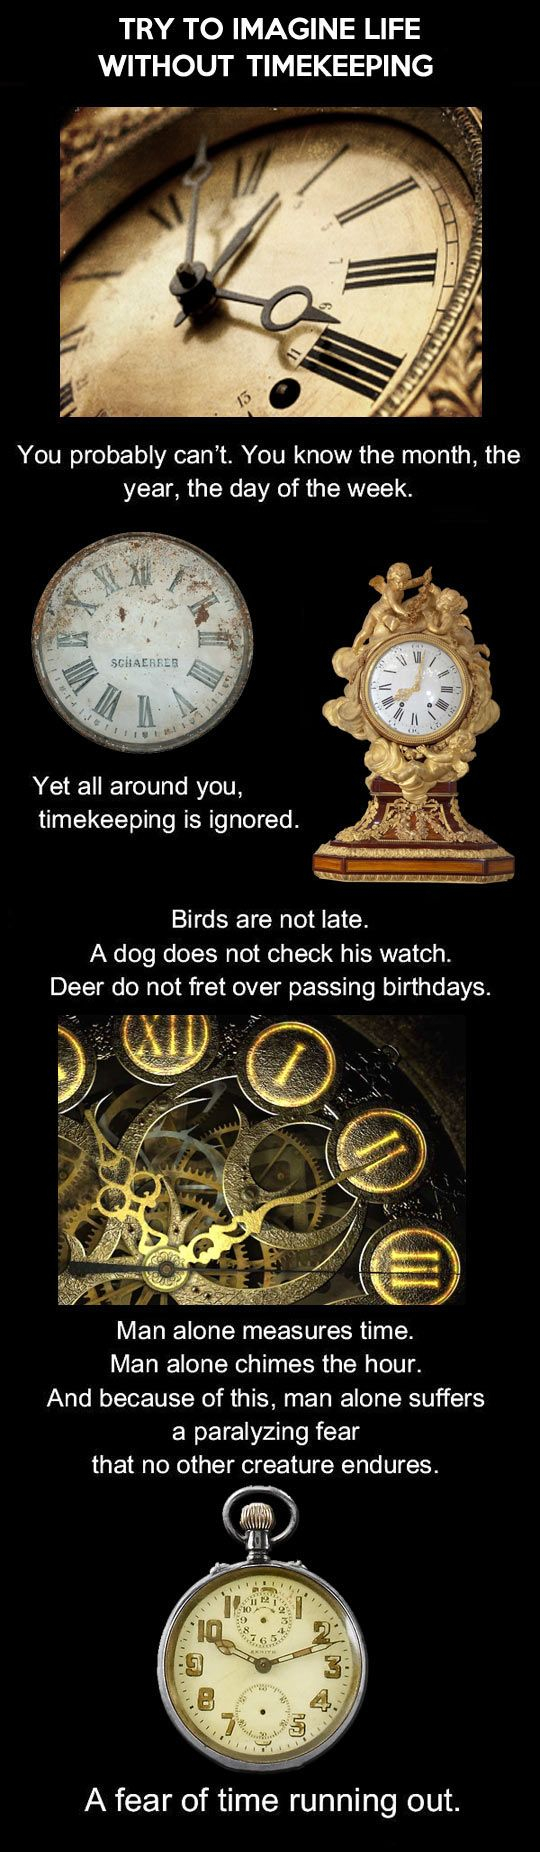 What would life be like for humans without the concept of time? This infographic tries to imagine the possibilities.